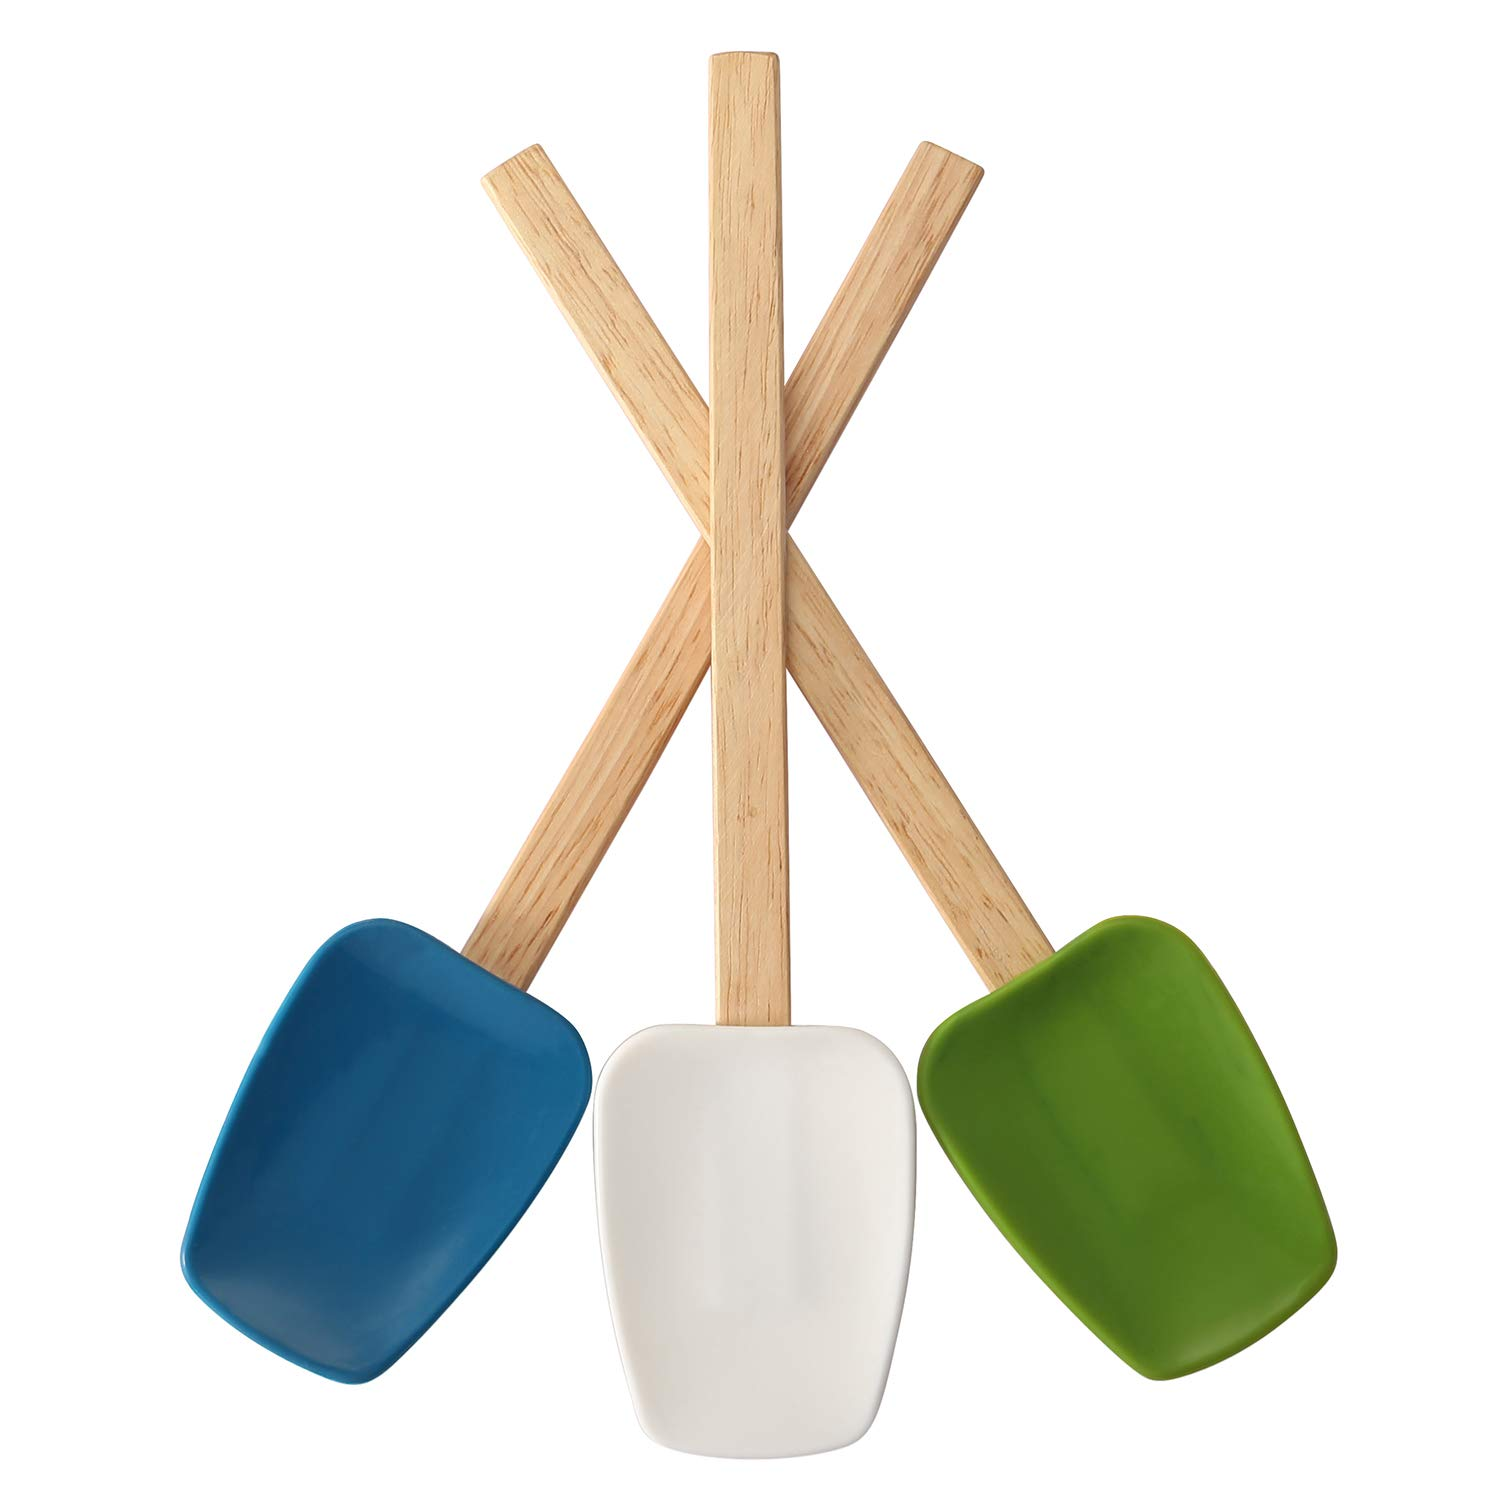 Spatulas silicone heat resistant with wood handle, 3 piece set-blue green white